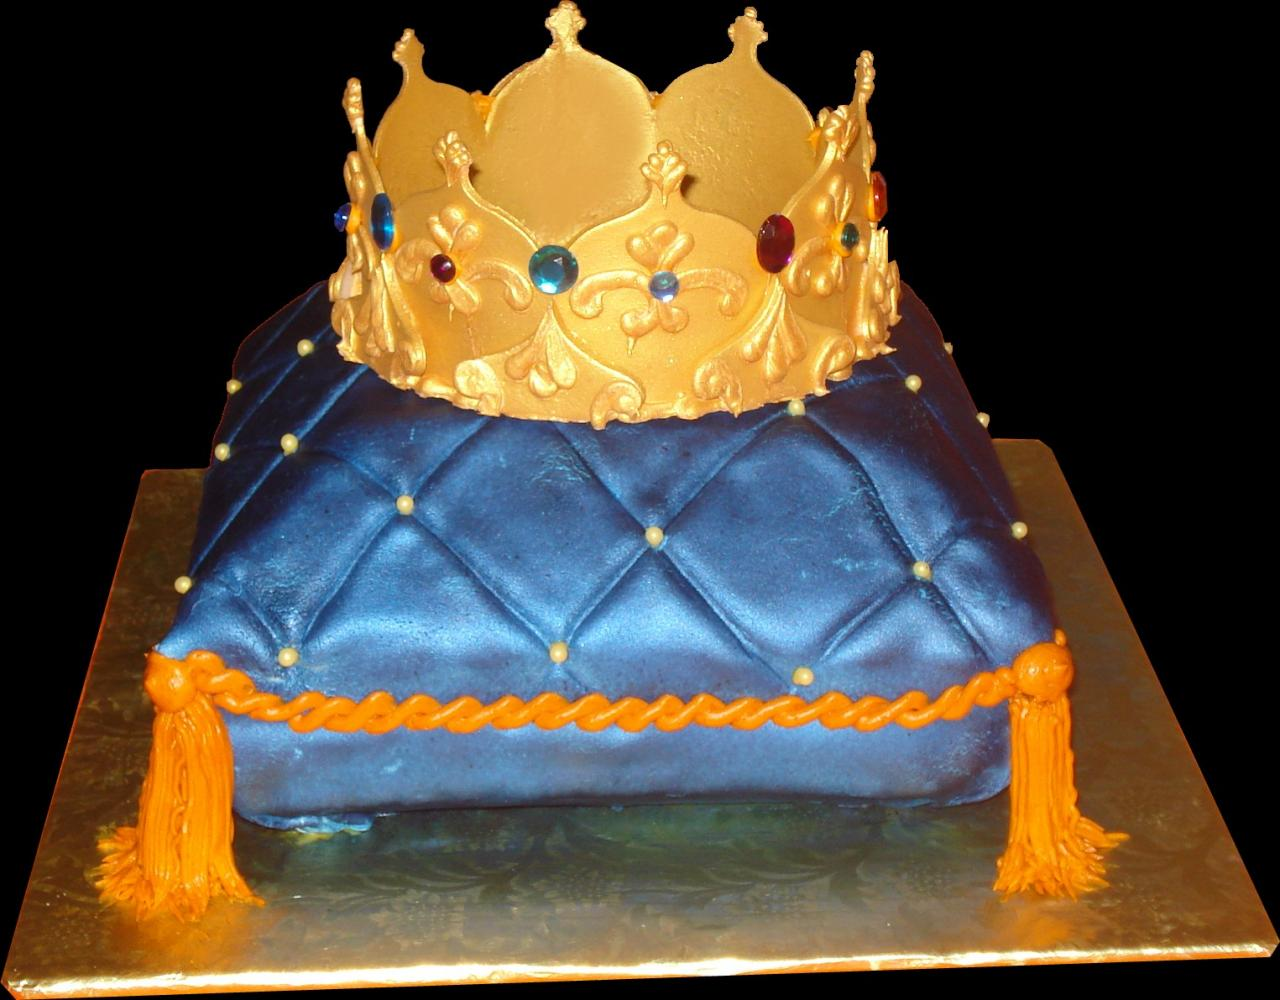 Crown Pillow Birthday Cake Blue Buttercream Iced Shaped Decorated With Tassels